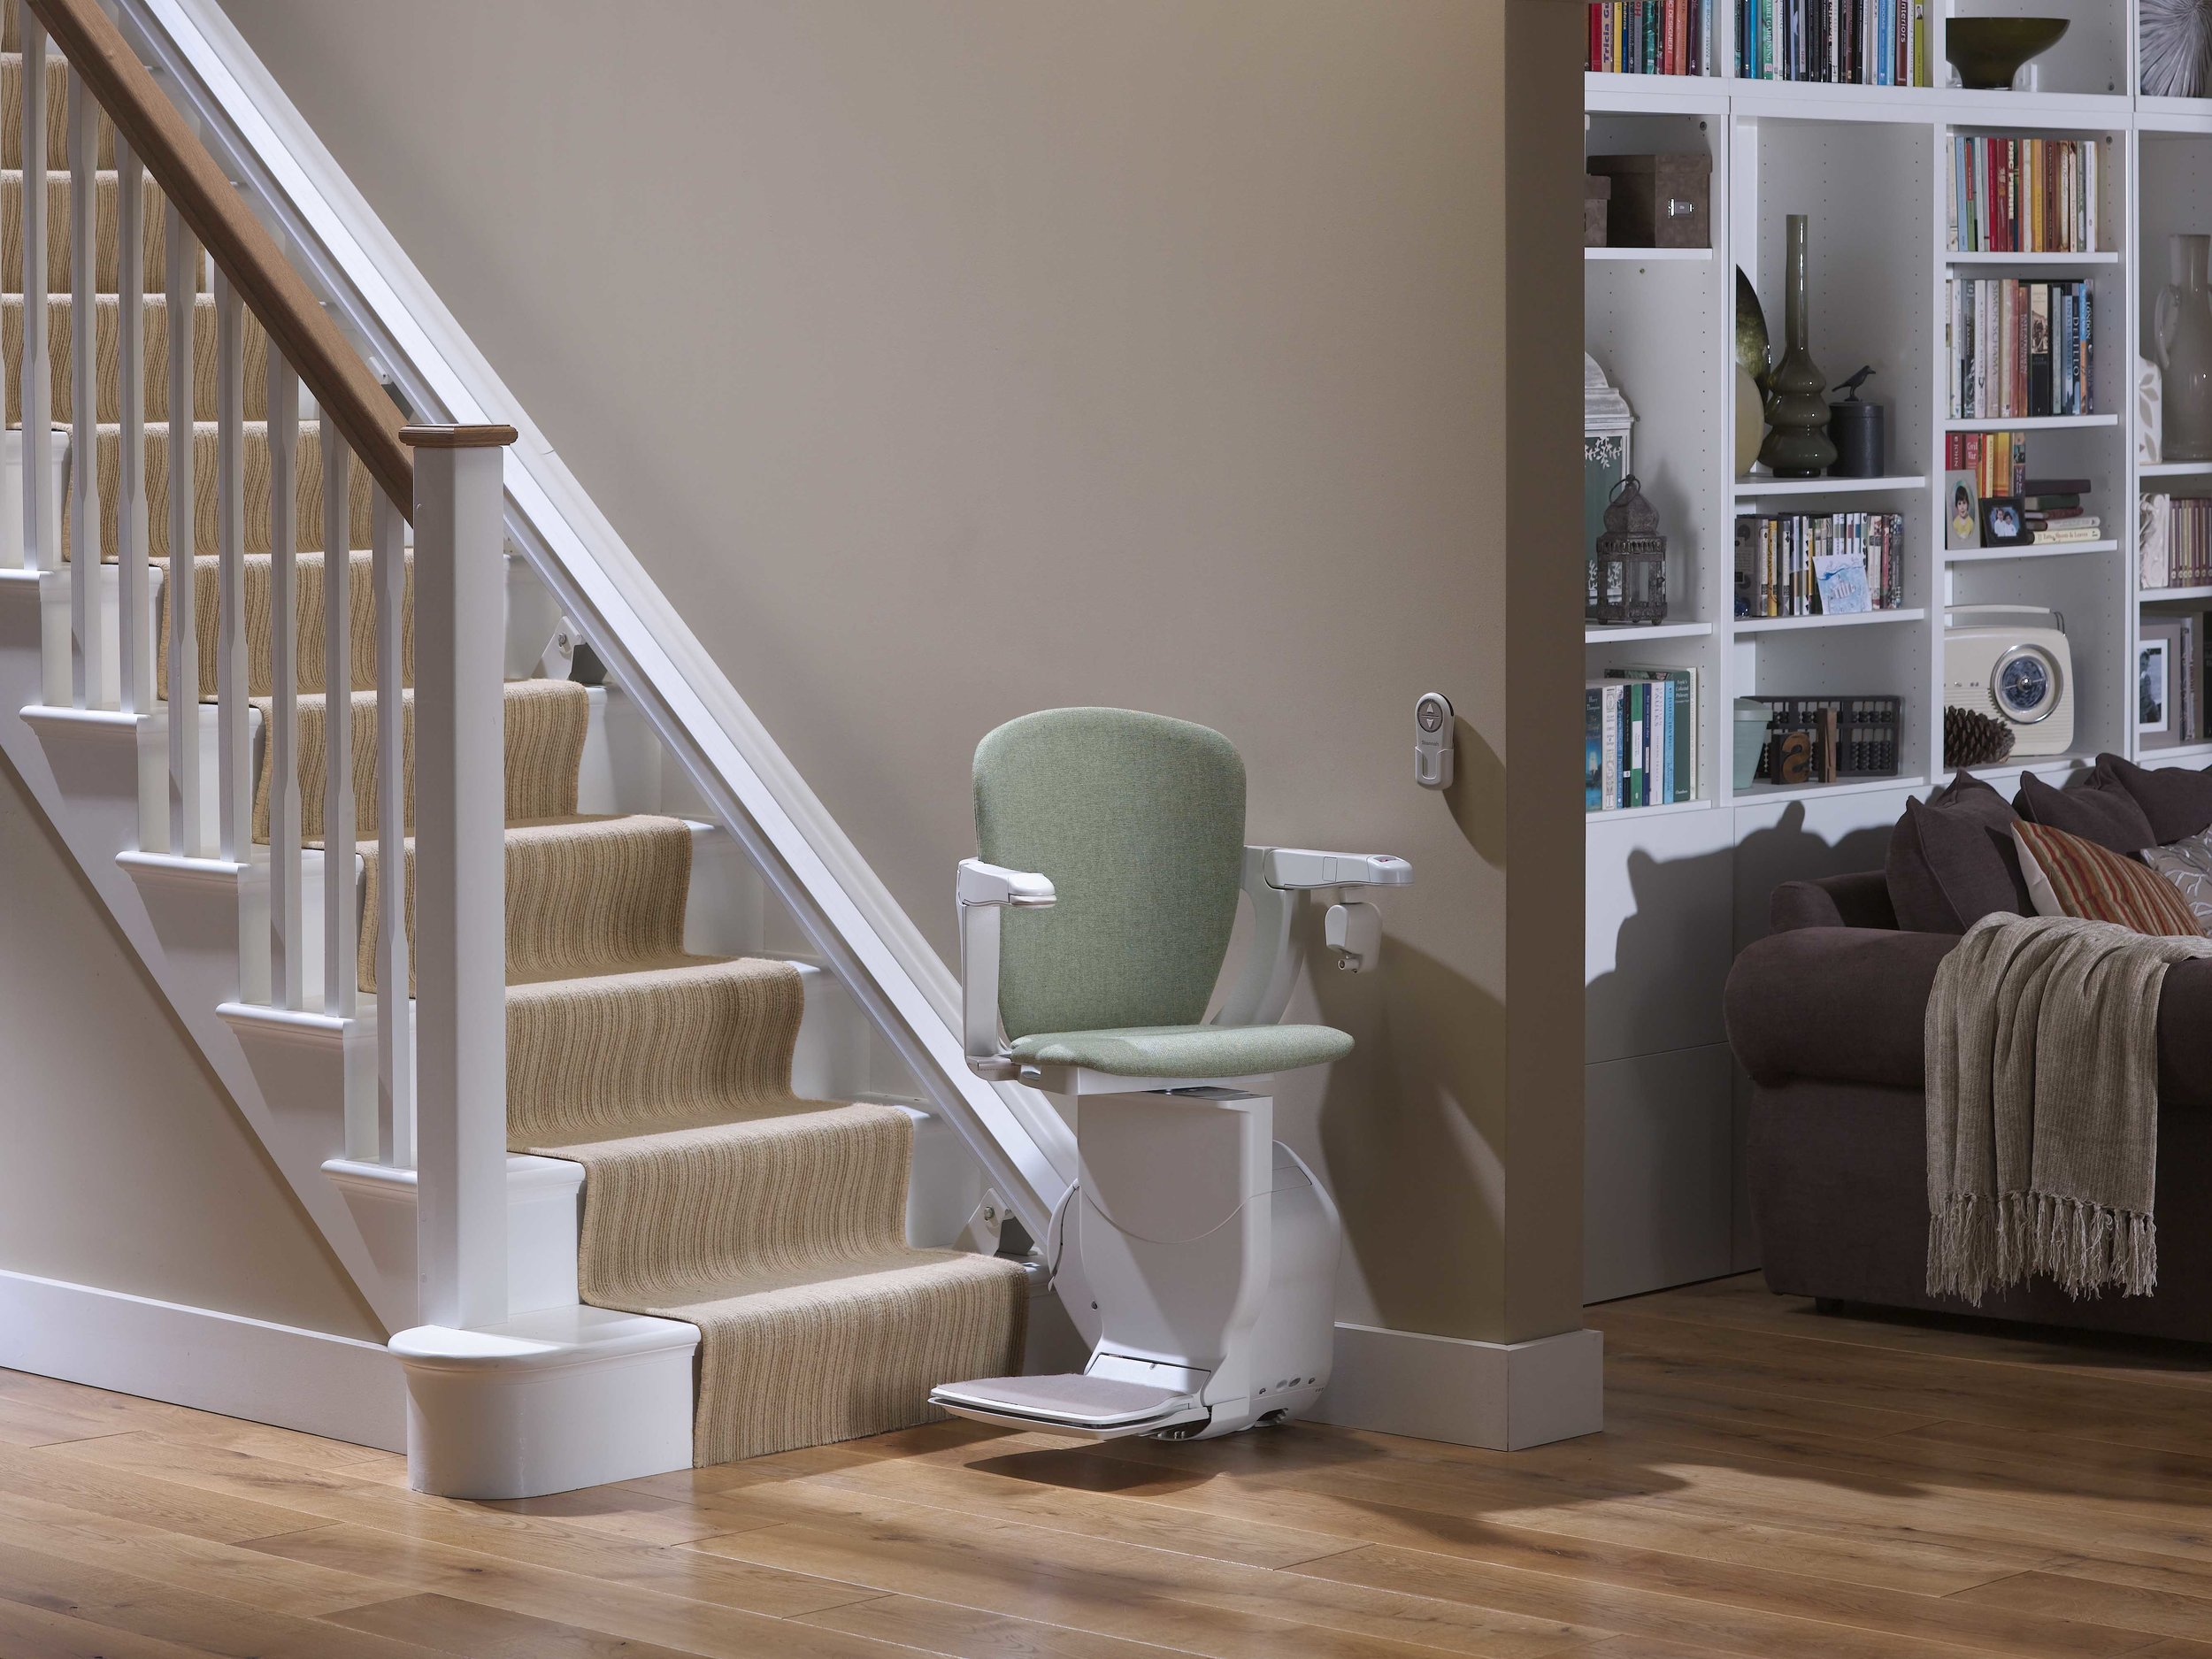 Stannah 600 straight stairlift Two Way Swivel Starla Seat